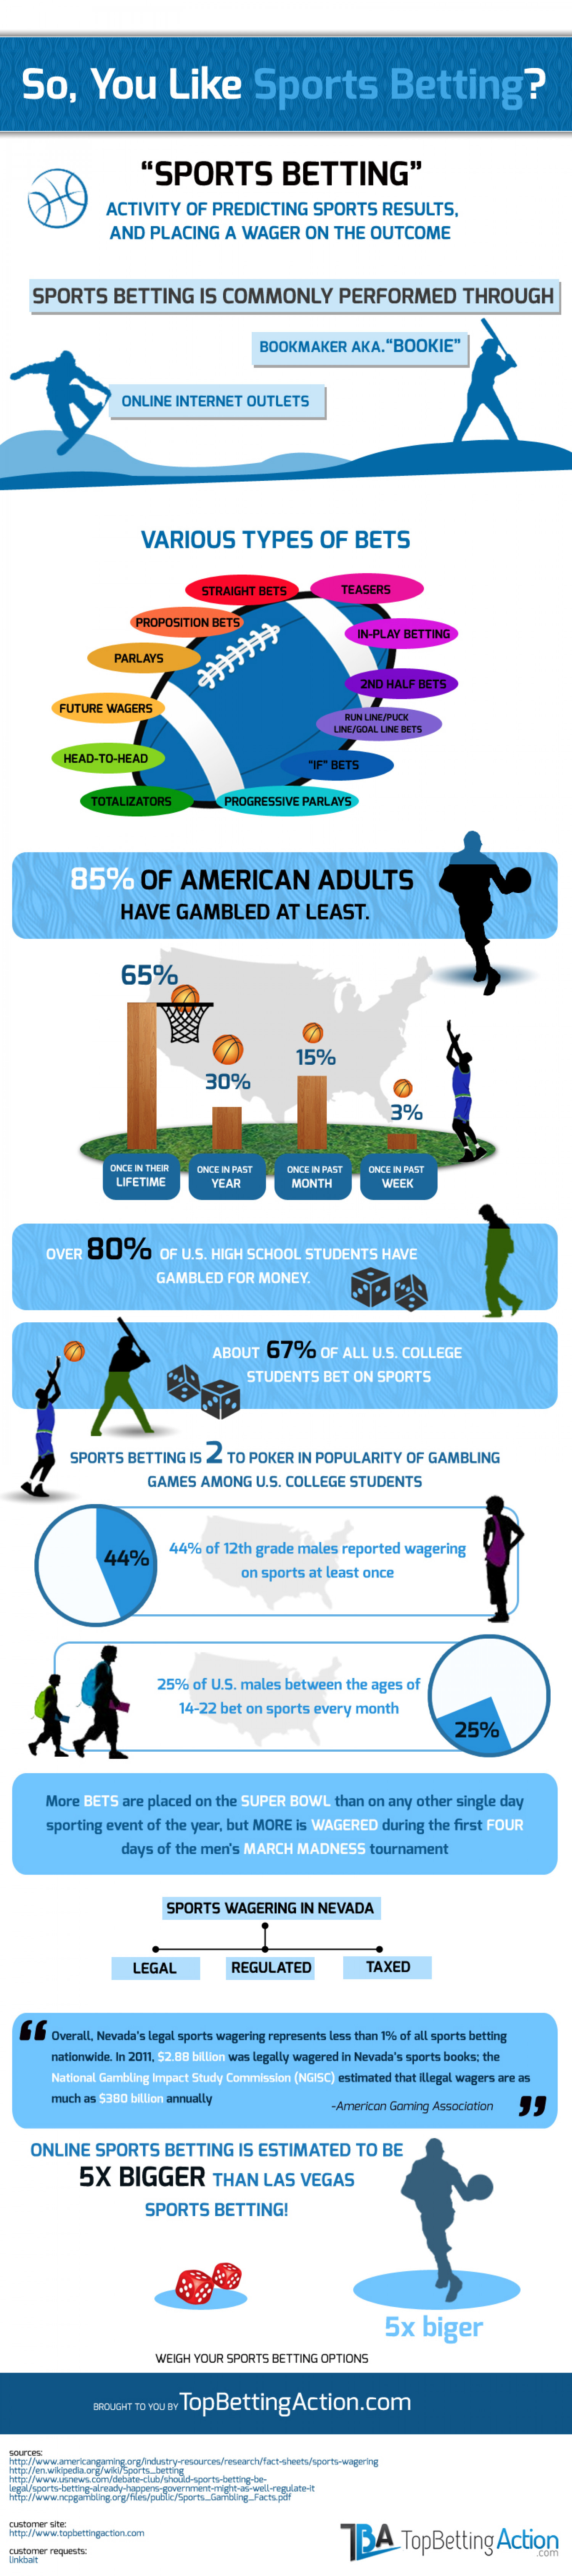 So,You Like Sports Betting? Infographic